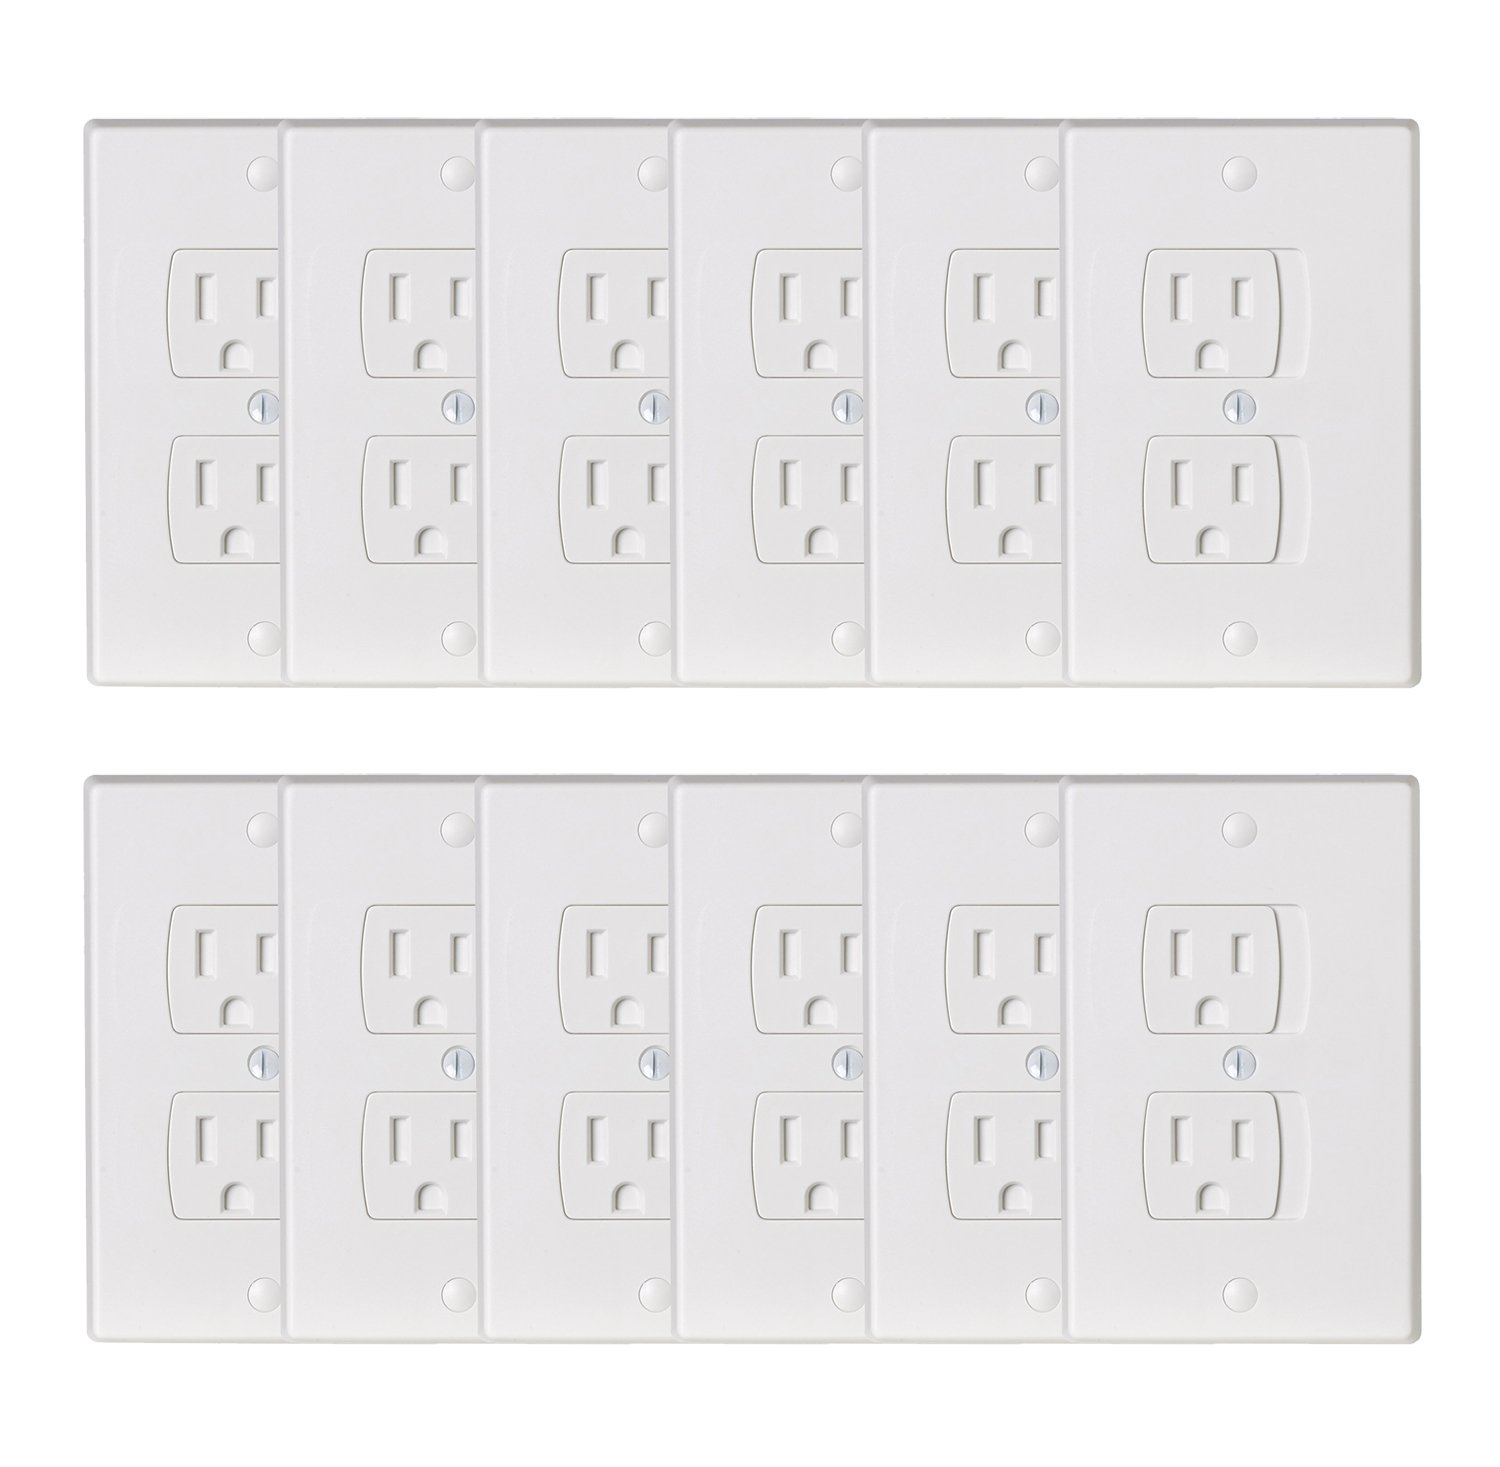 BUENAVO Universal Electrical Outlet Covers, Baby Safety Self-Closing Wall Socket Plugs Plate Alternate for Child Proofing, BPA Free (White-12 Pack) by BUENAVO